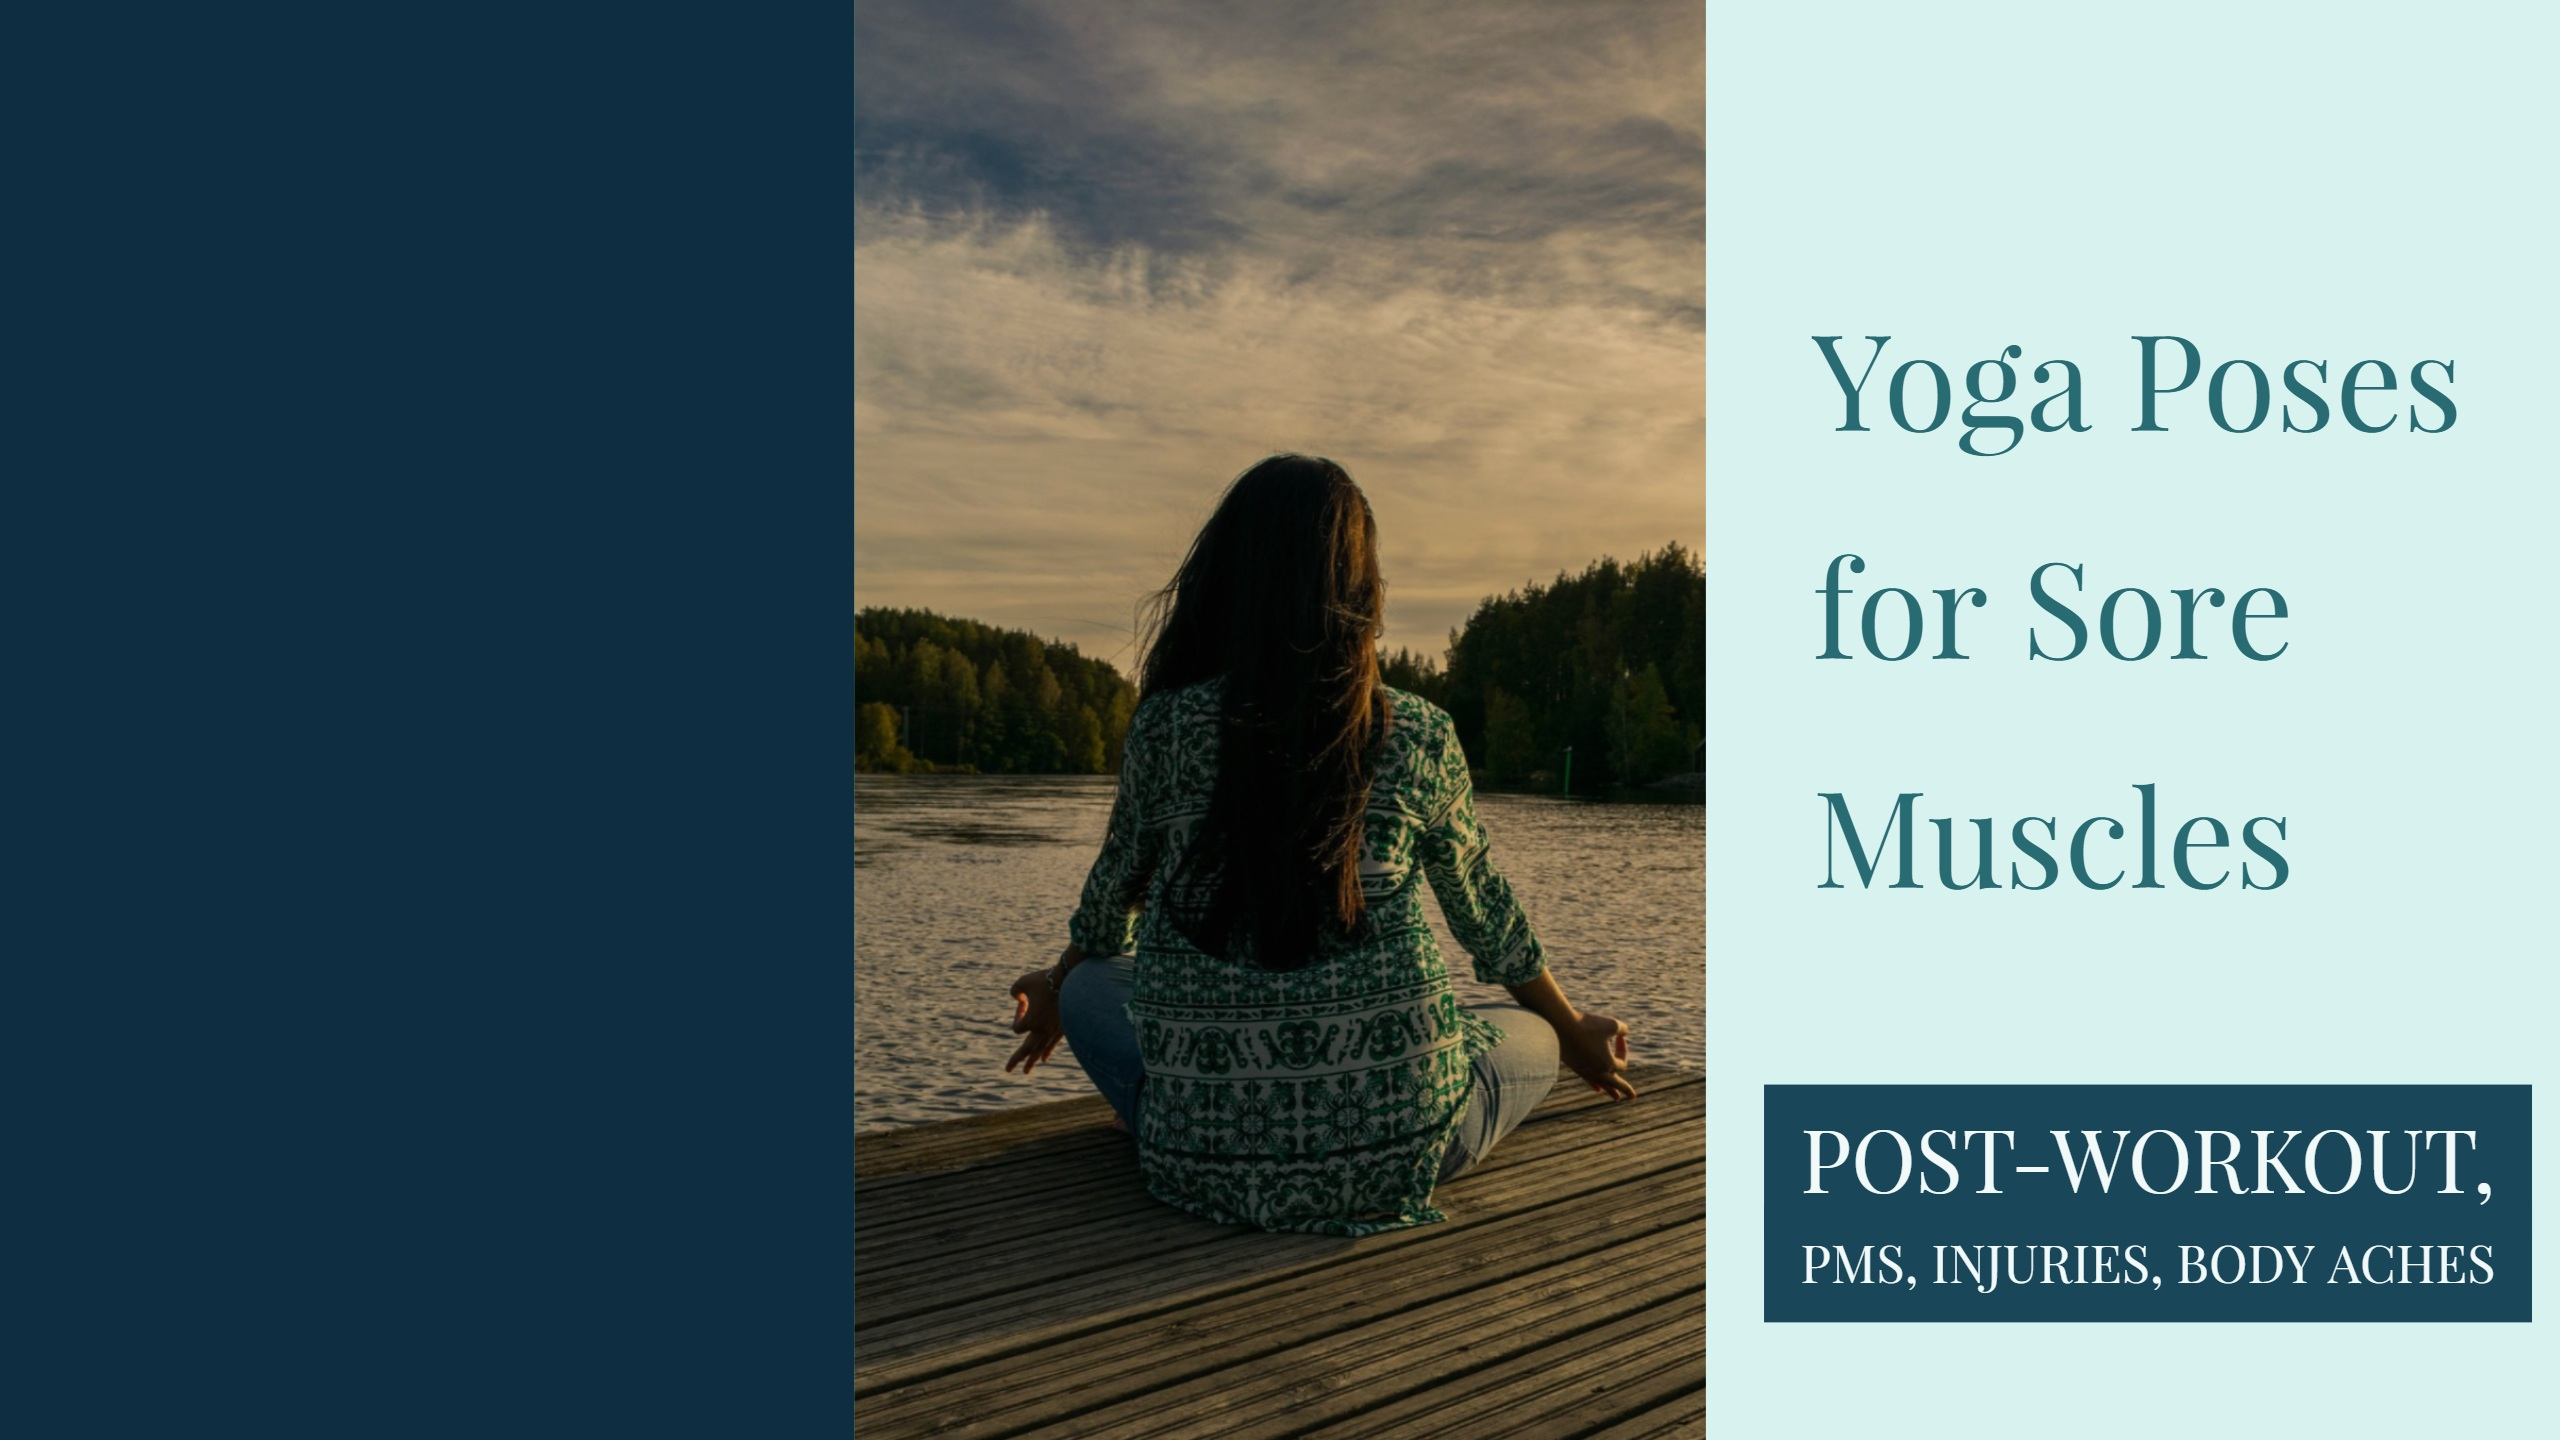 Yoga Poses for Sore Muscles